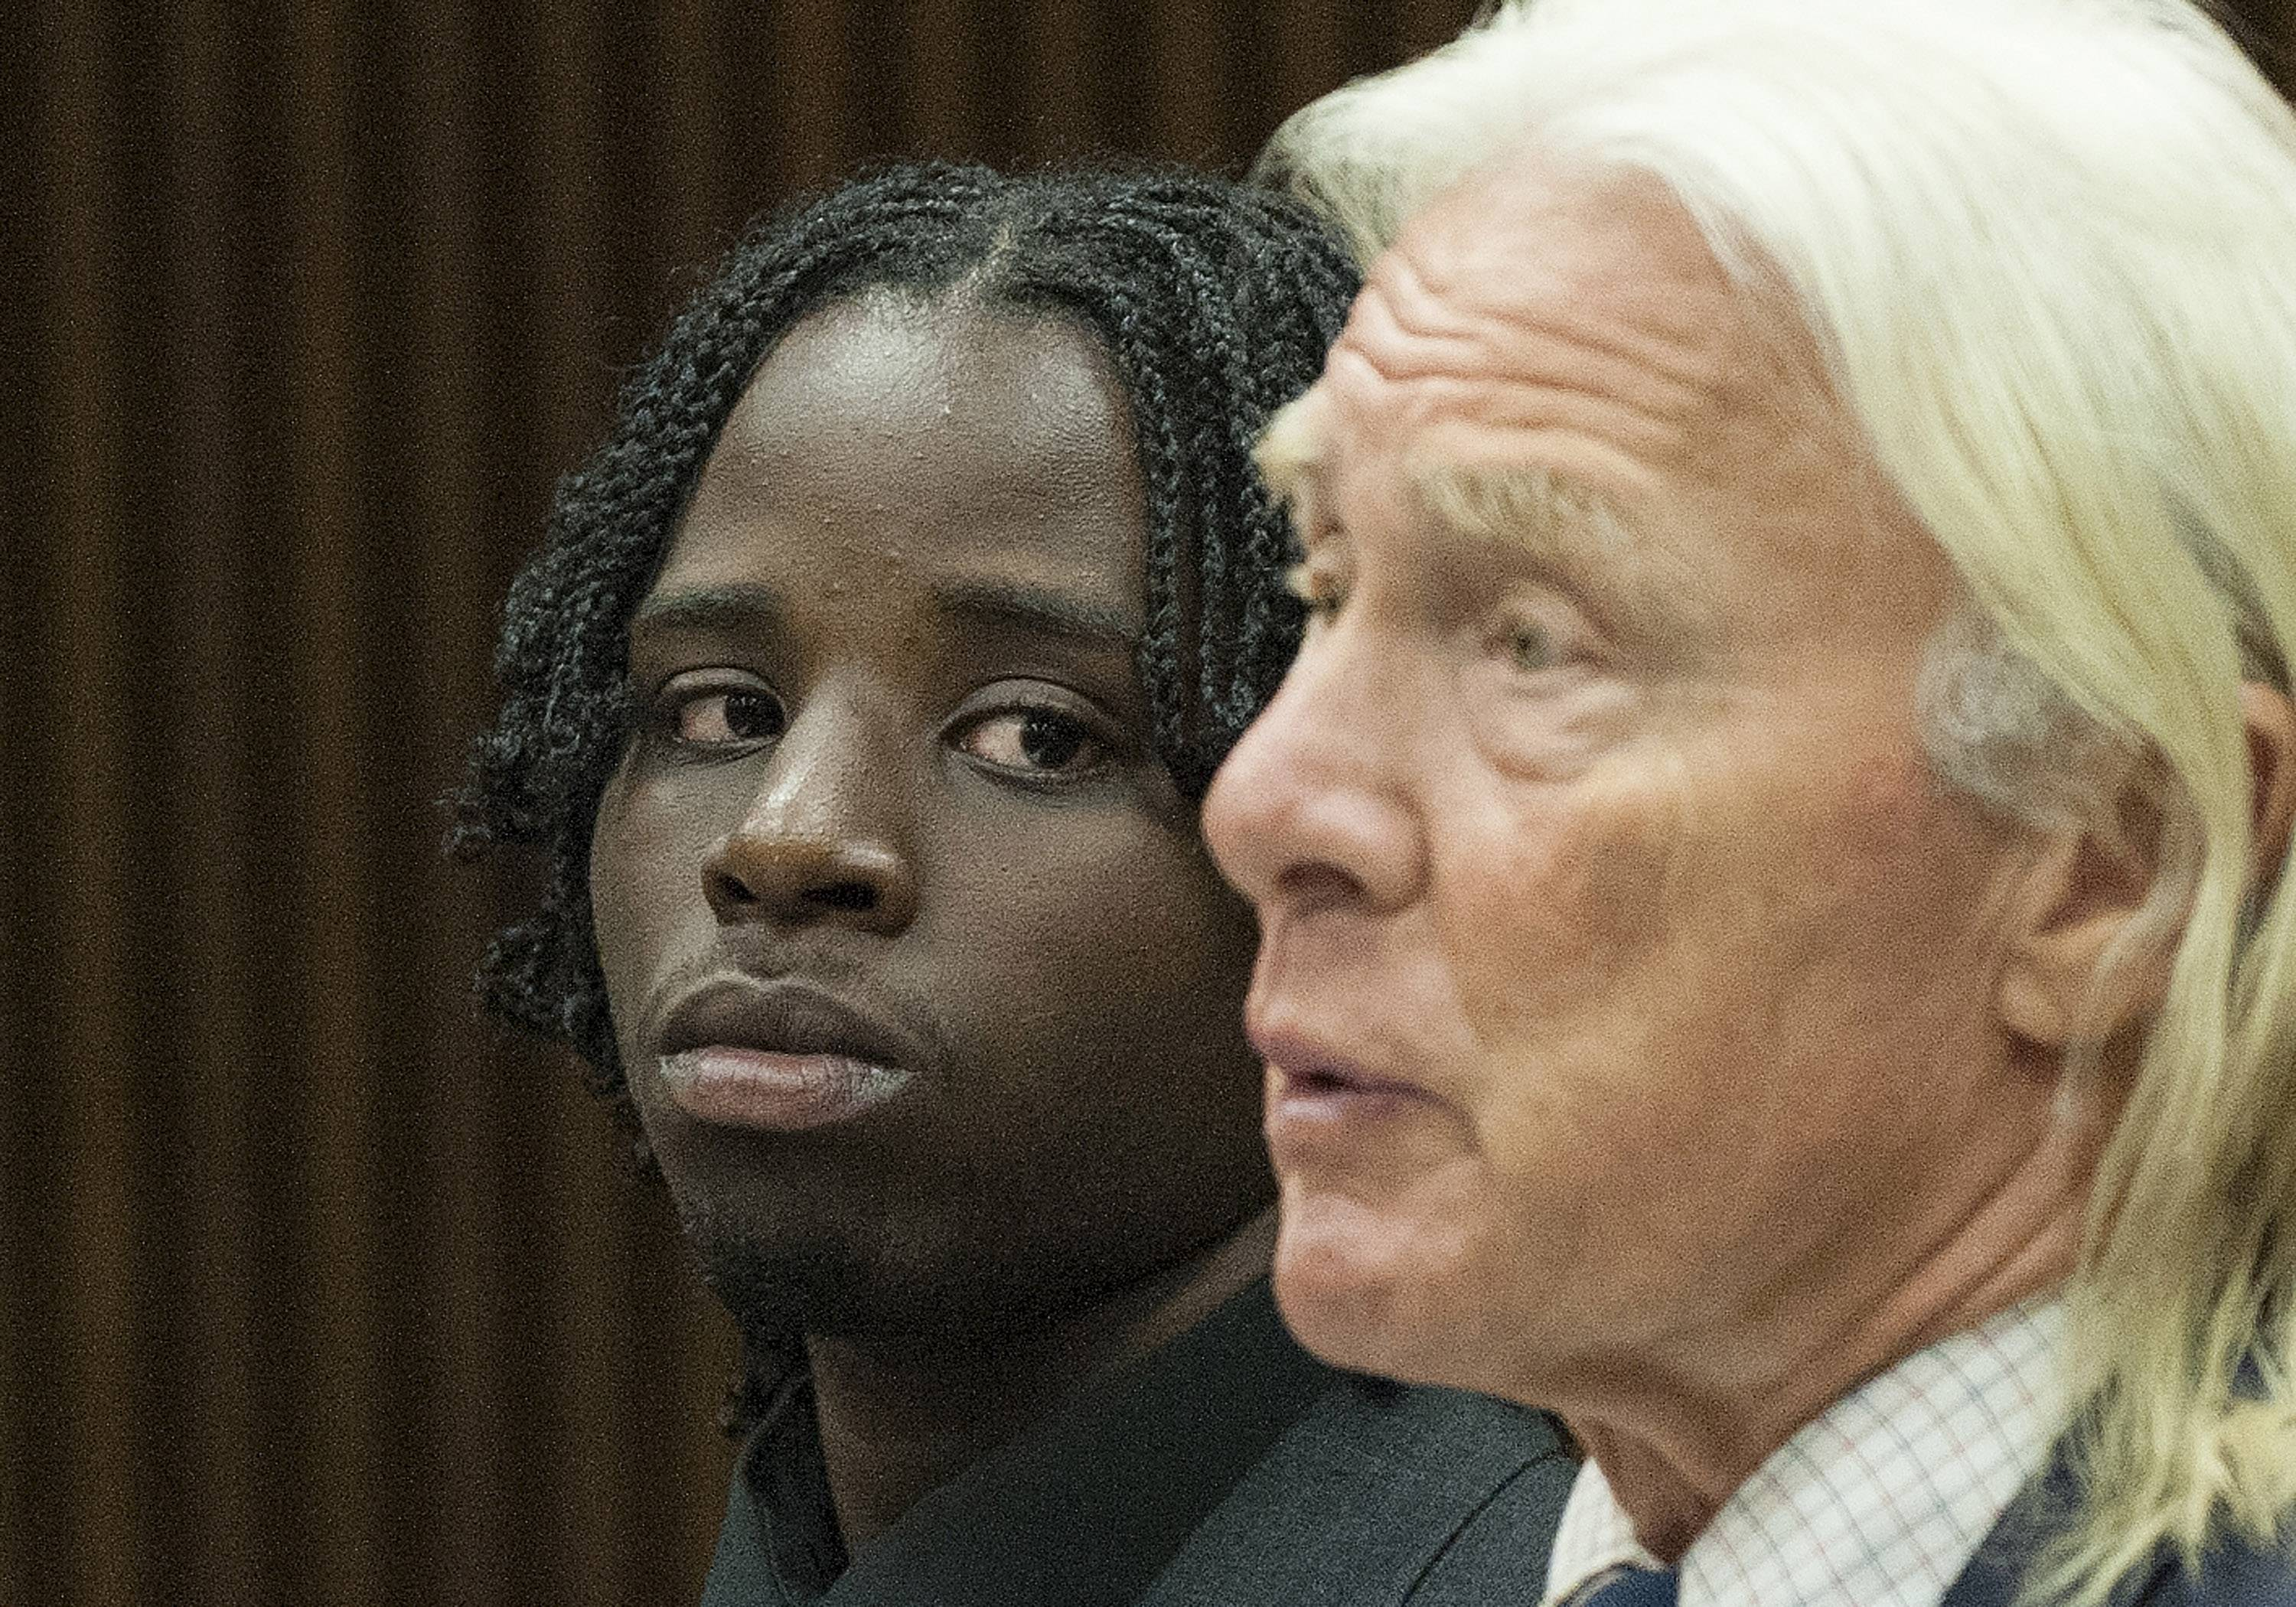 Latrez Cummings, left, stands with his attorney Robert Slameka in a Detroit court.